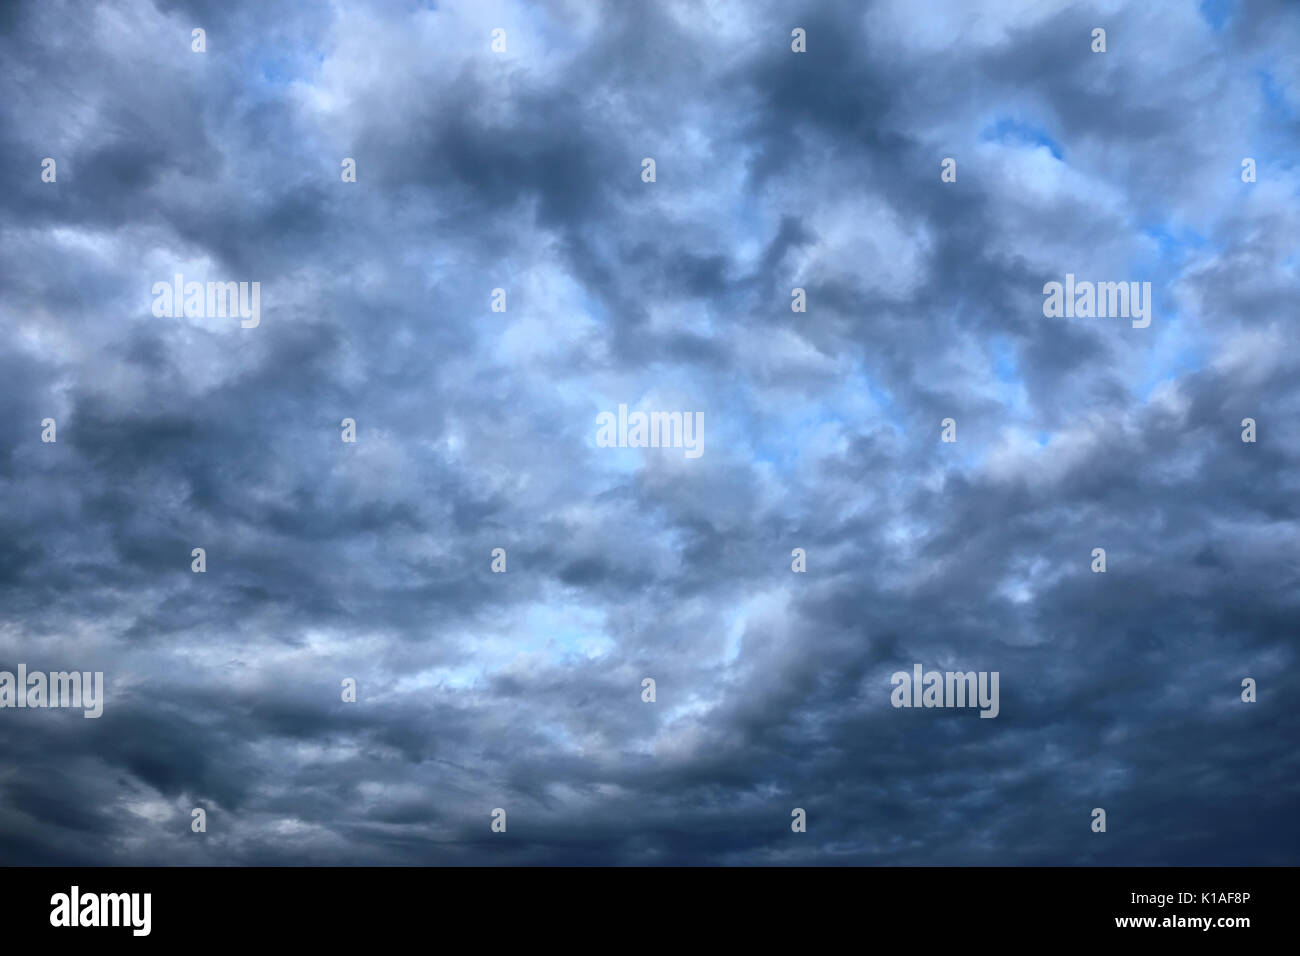 Fluffy clouds, heavily densed, covering the whole sky, giving it a bit of an artistic look - Stock Image